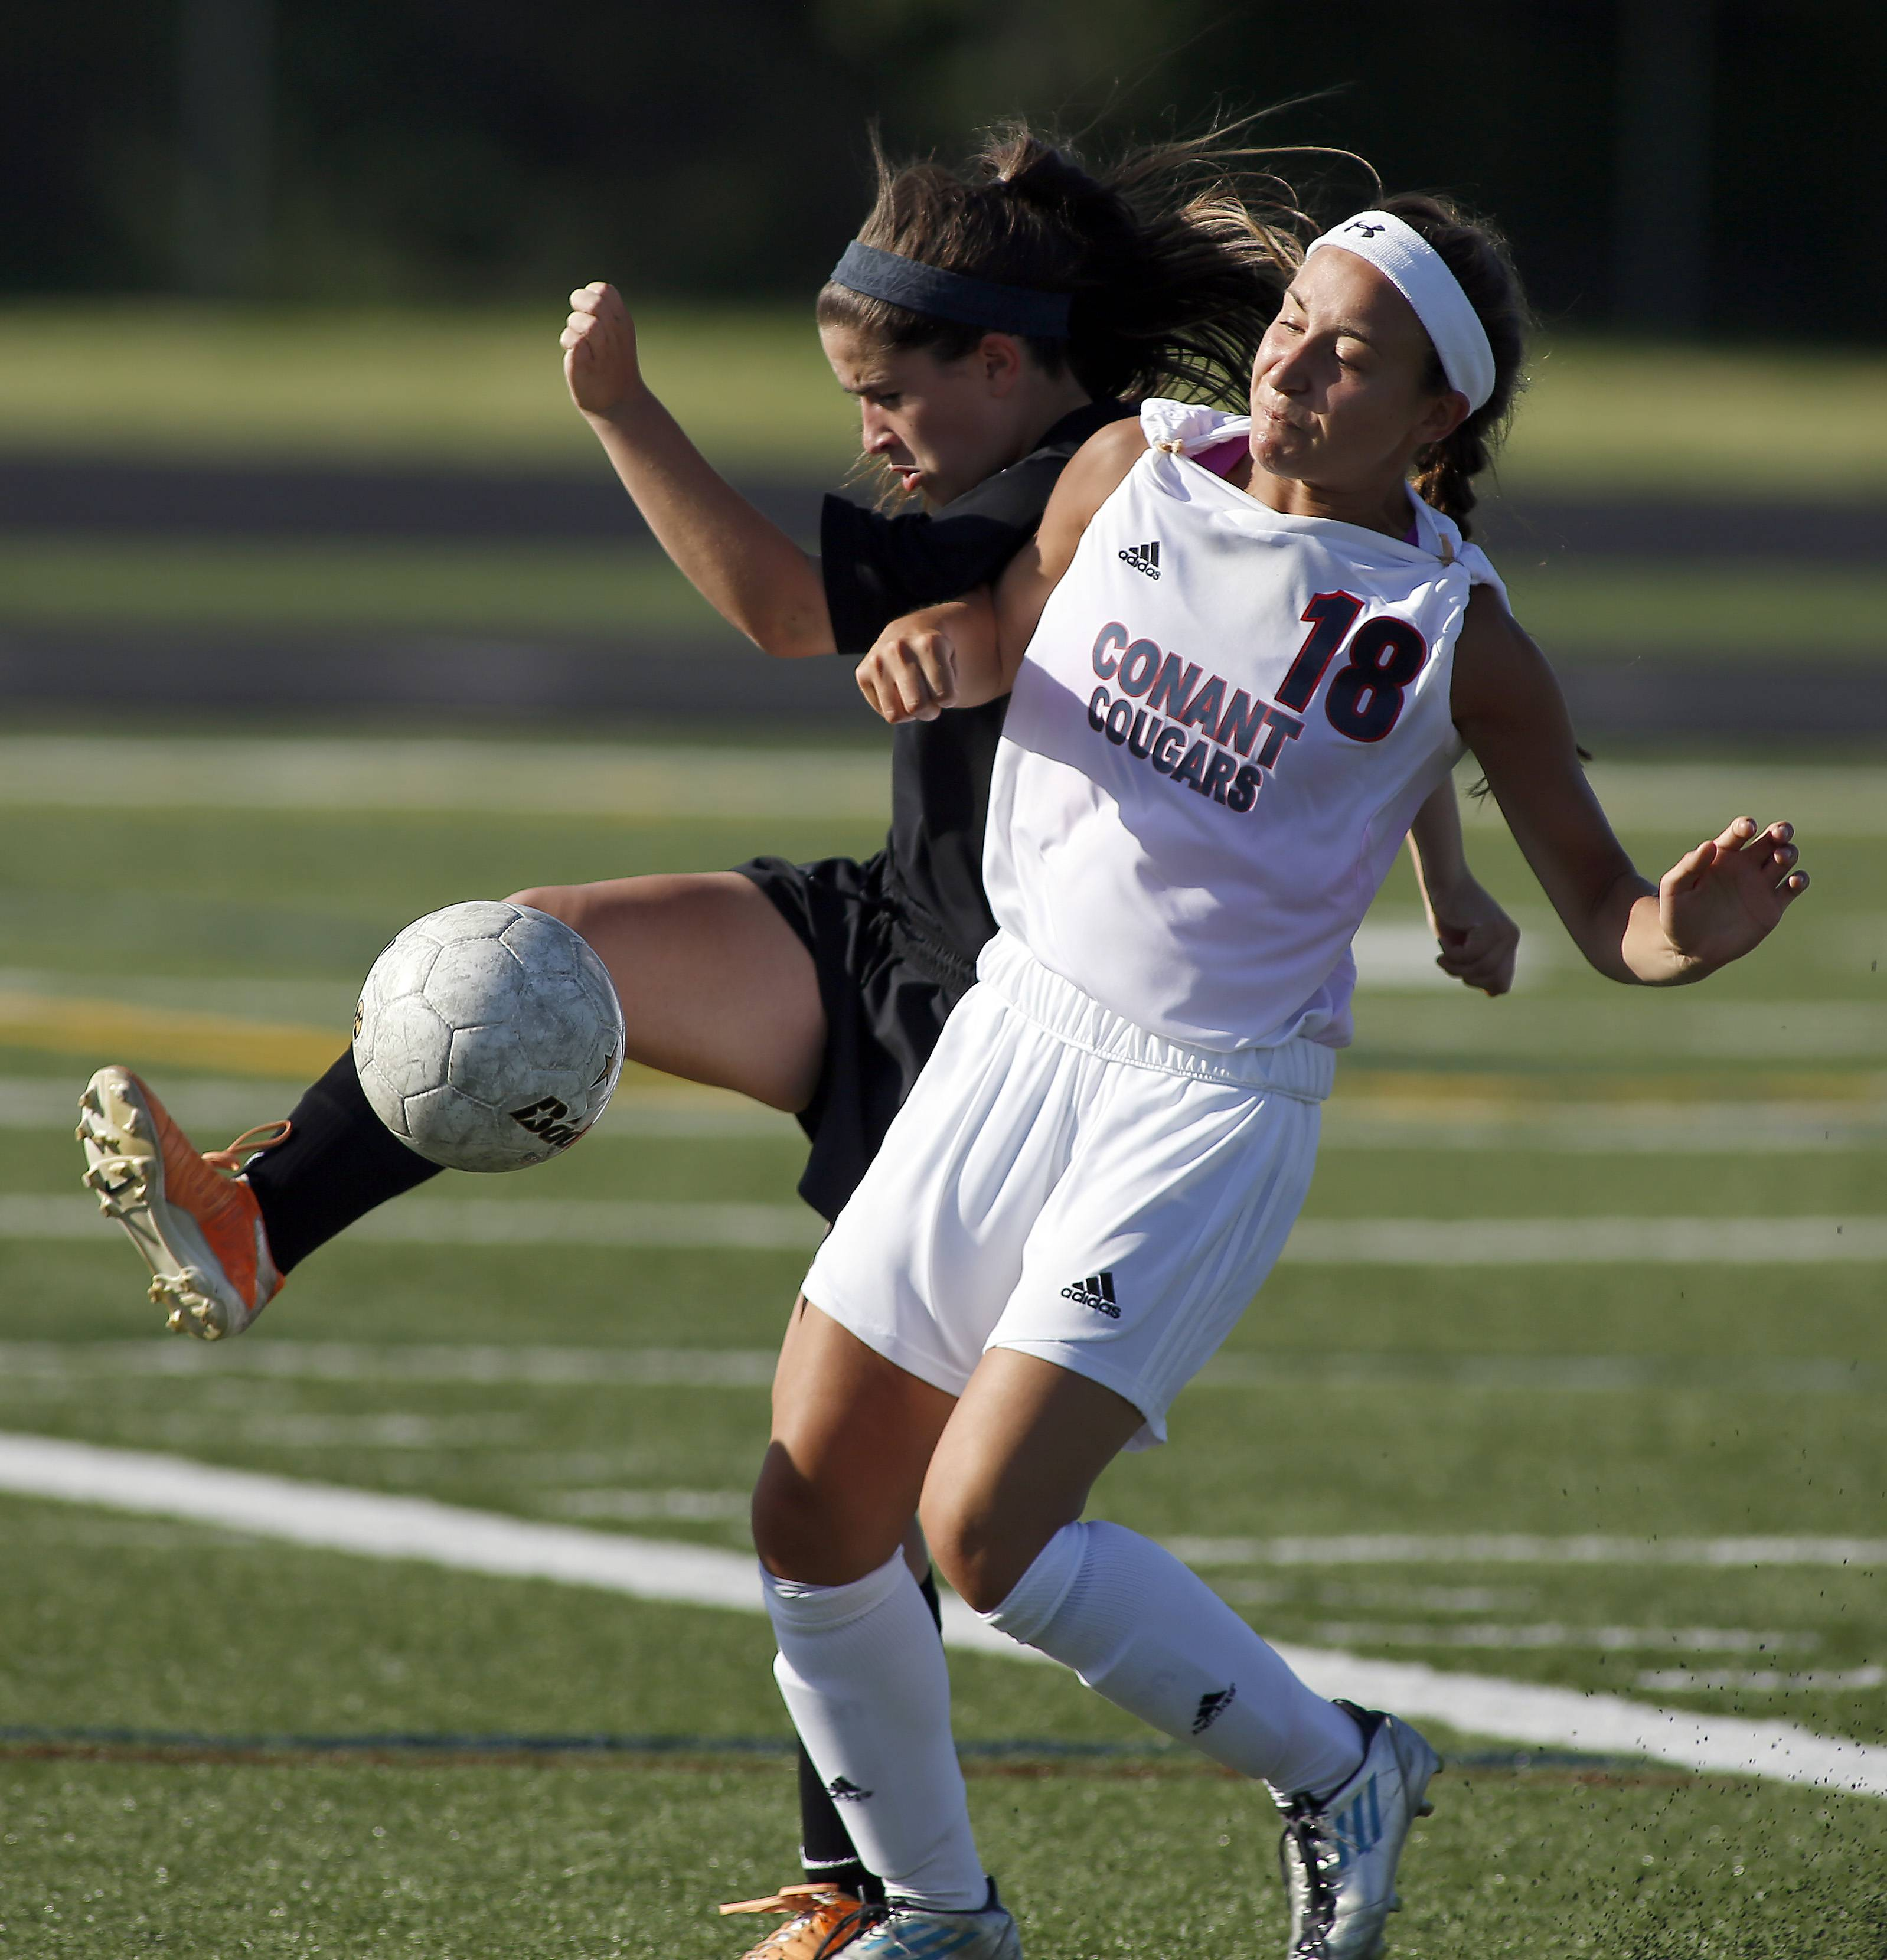 St. Charles East's Sara Buetow, 8, goes to battle against Conant's Emily Mazurek, 18, during St. Charles East vs. Conant girls soccer sectional title game Friday in Hoffman Estates.